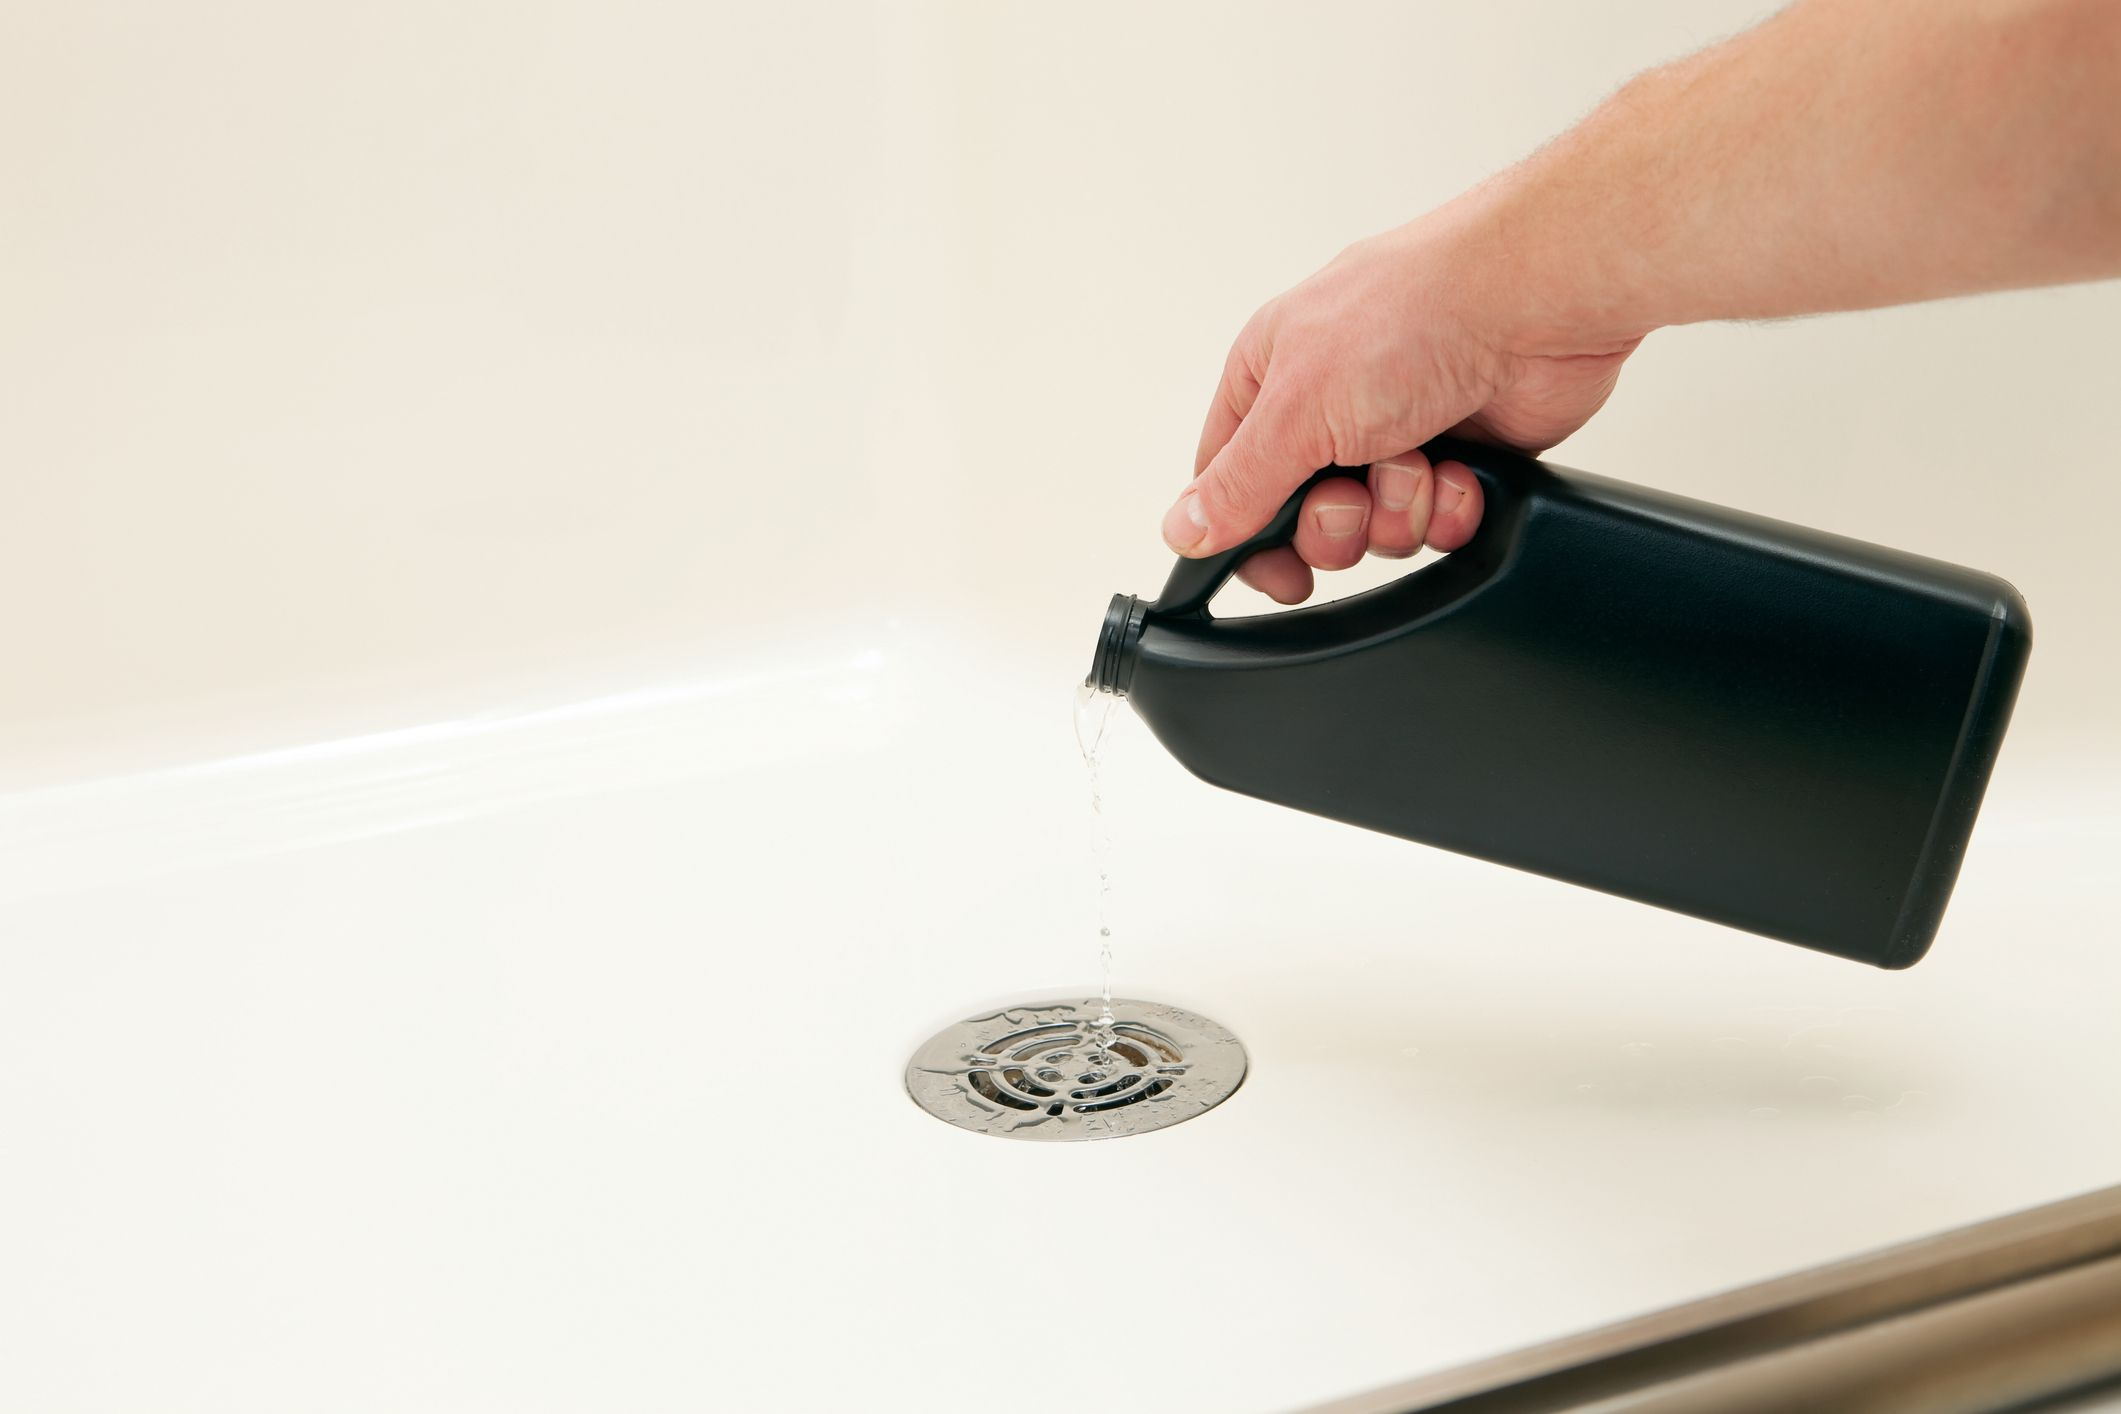 Unclogging Shower with Liquid Drain Cleaner 'A male hand is pouring liquid drain cleaner into a shower drain to dissolve a clog and improve water flow. Alternatively, this image could be used for poring waste down a drain.'